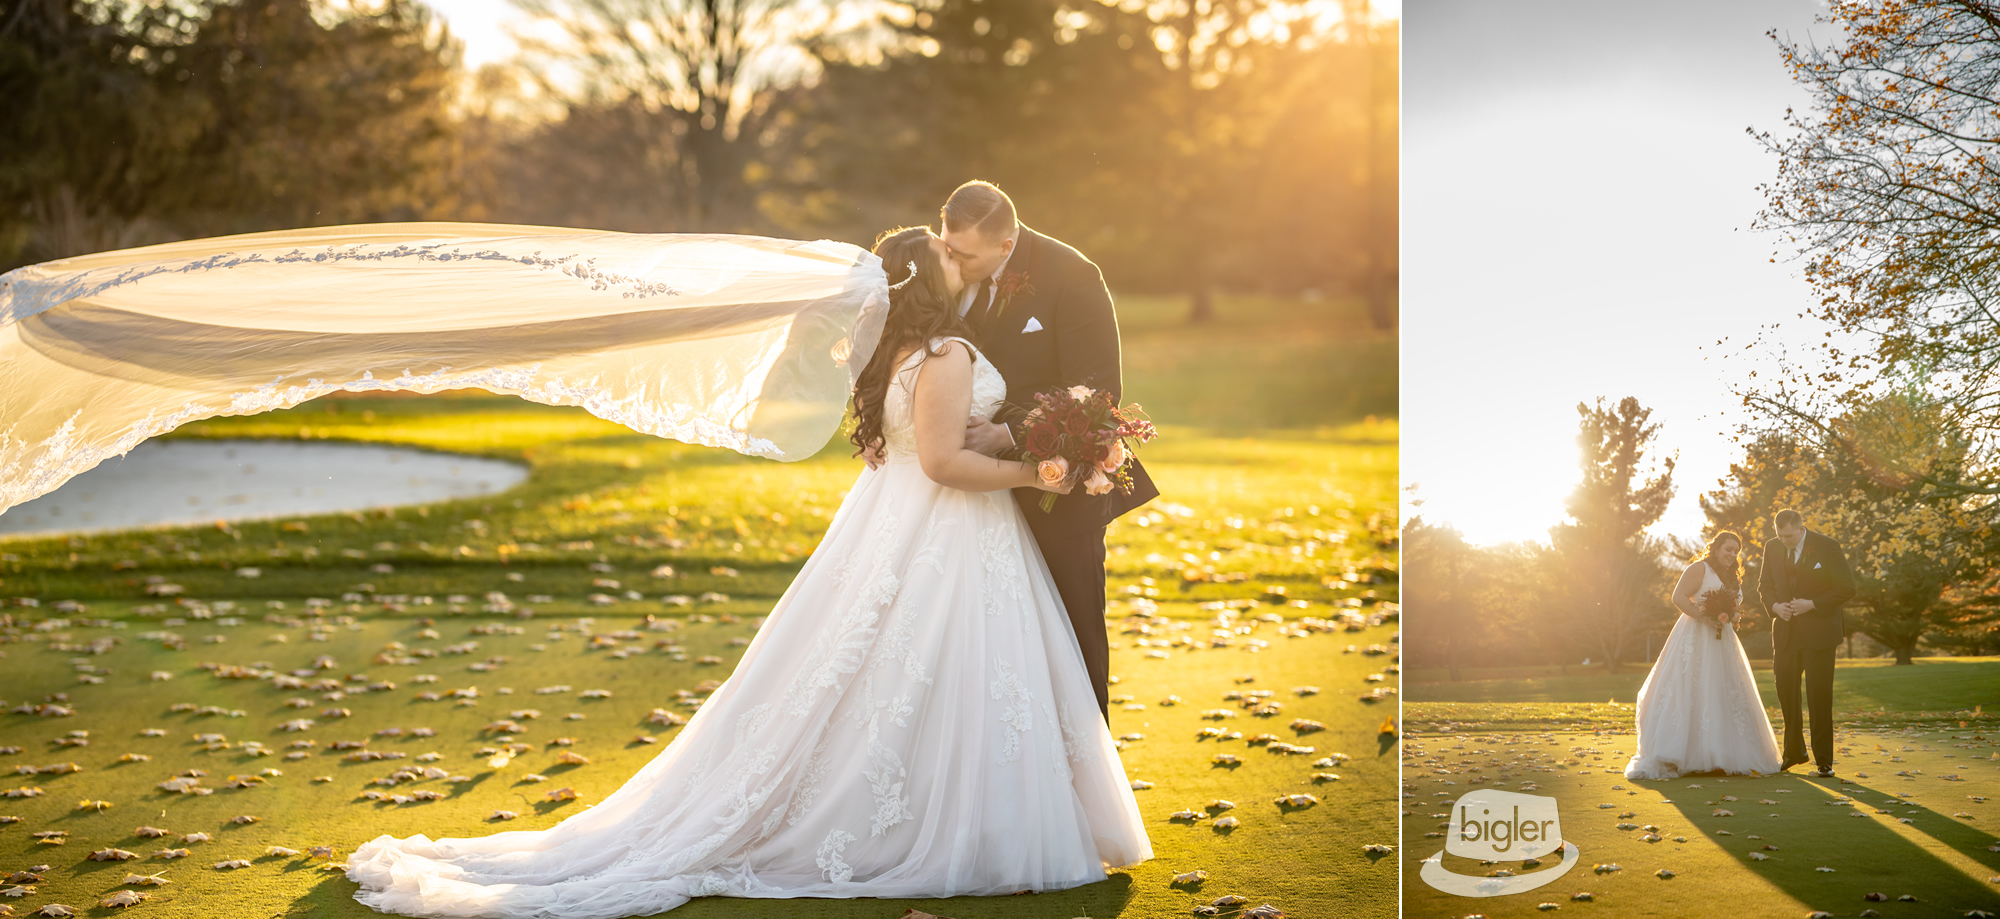 20181110_-_17_-_Amanda_and_Michael,_Albany_Country_Club,_Wedding_Photos